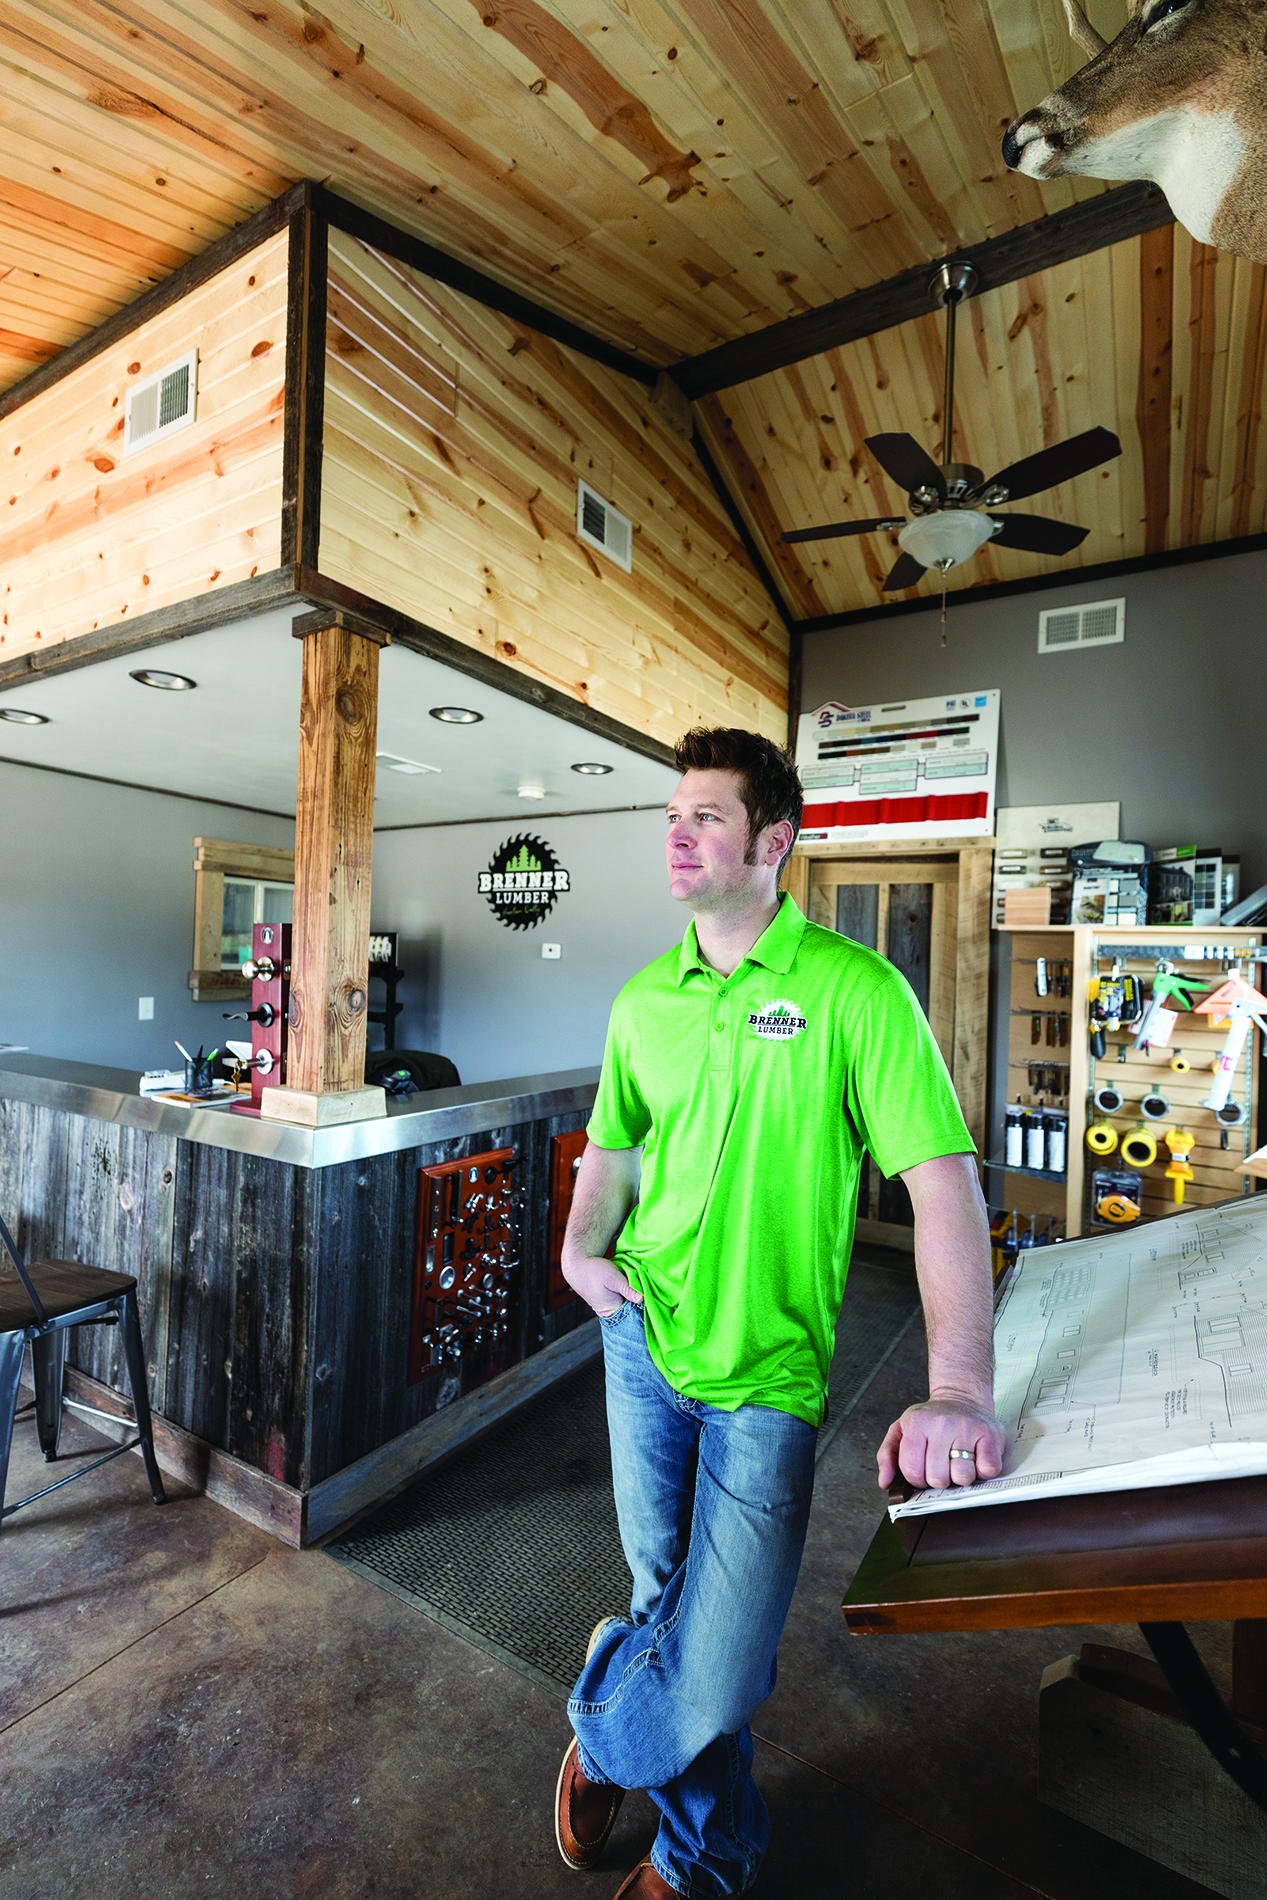 Wisconsin Start Up Brenner Lumber Aims To Fill A Community